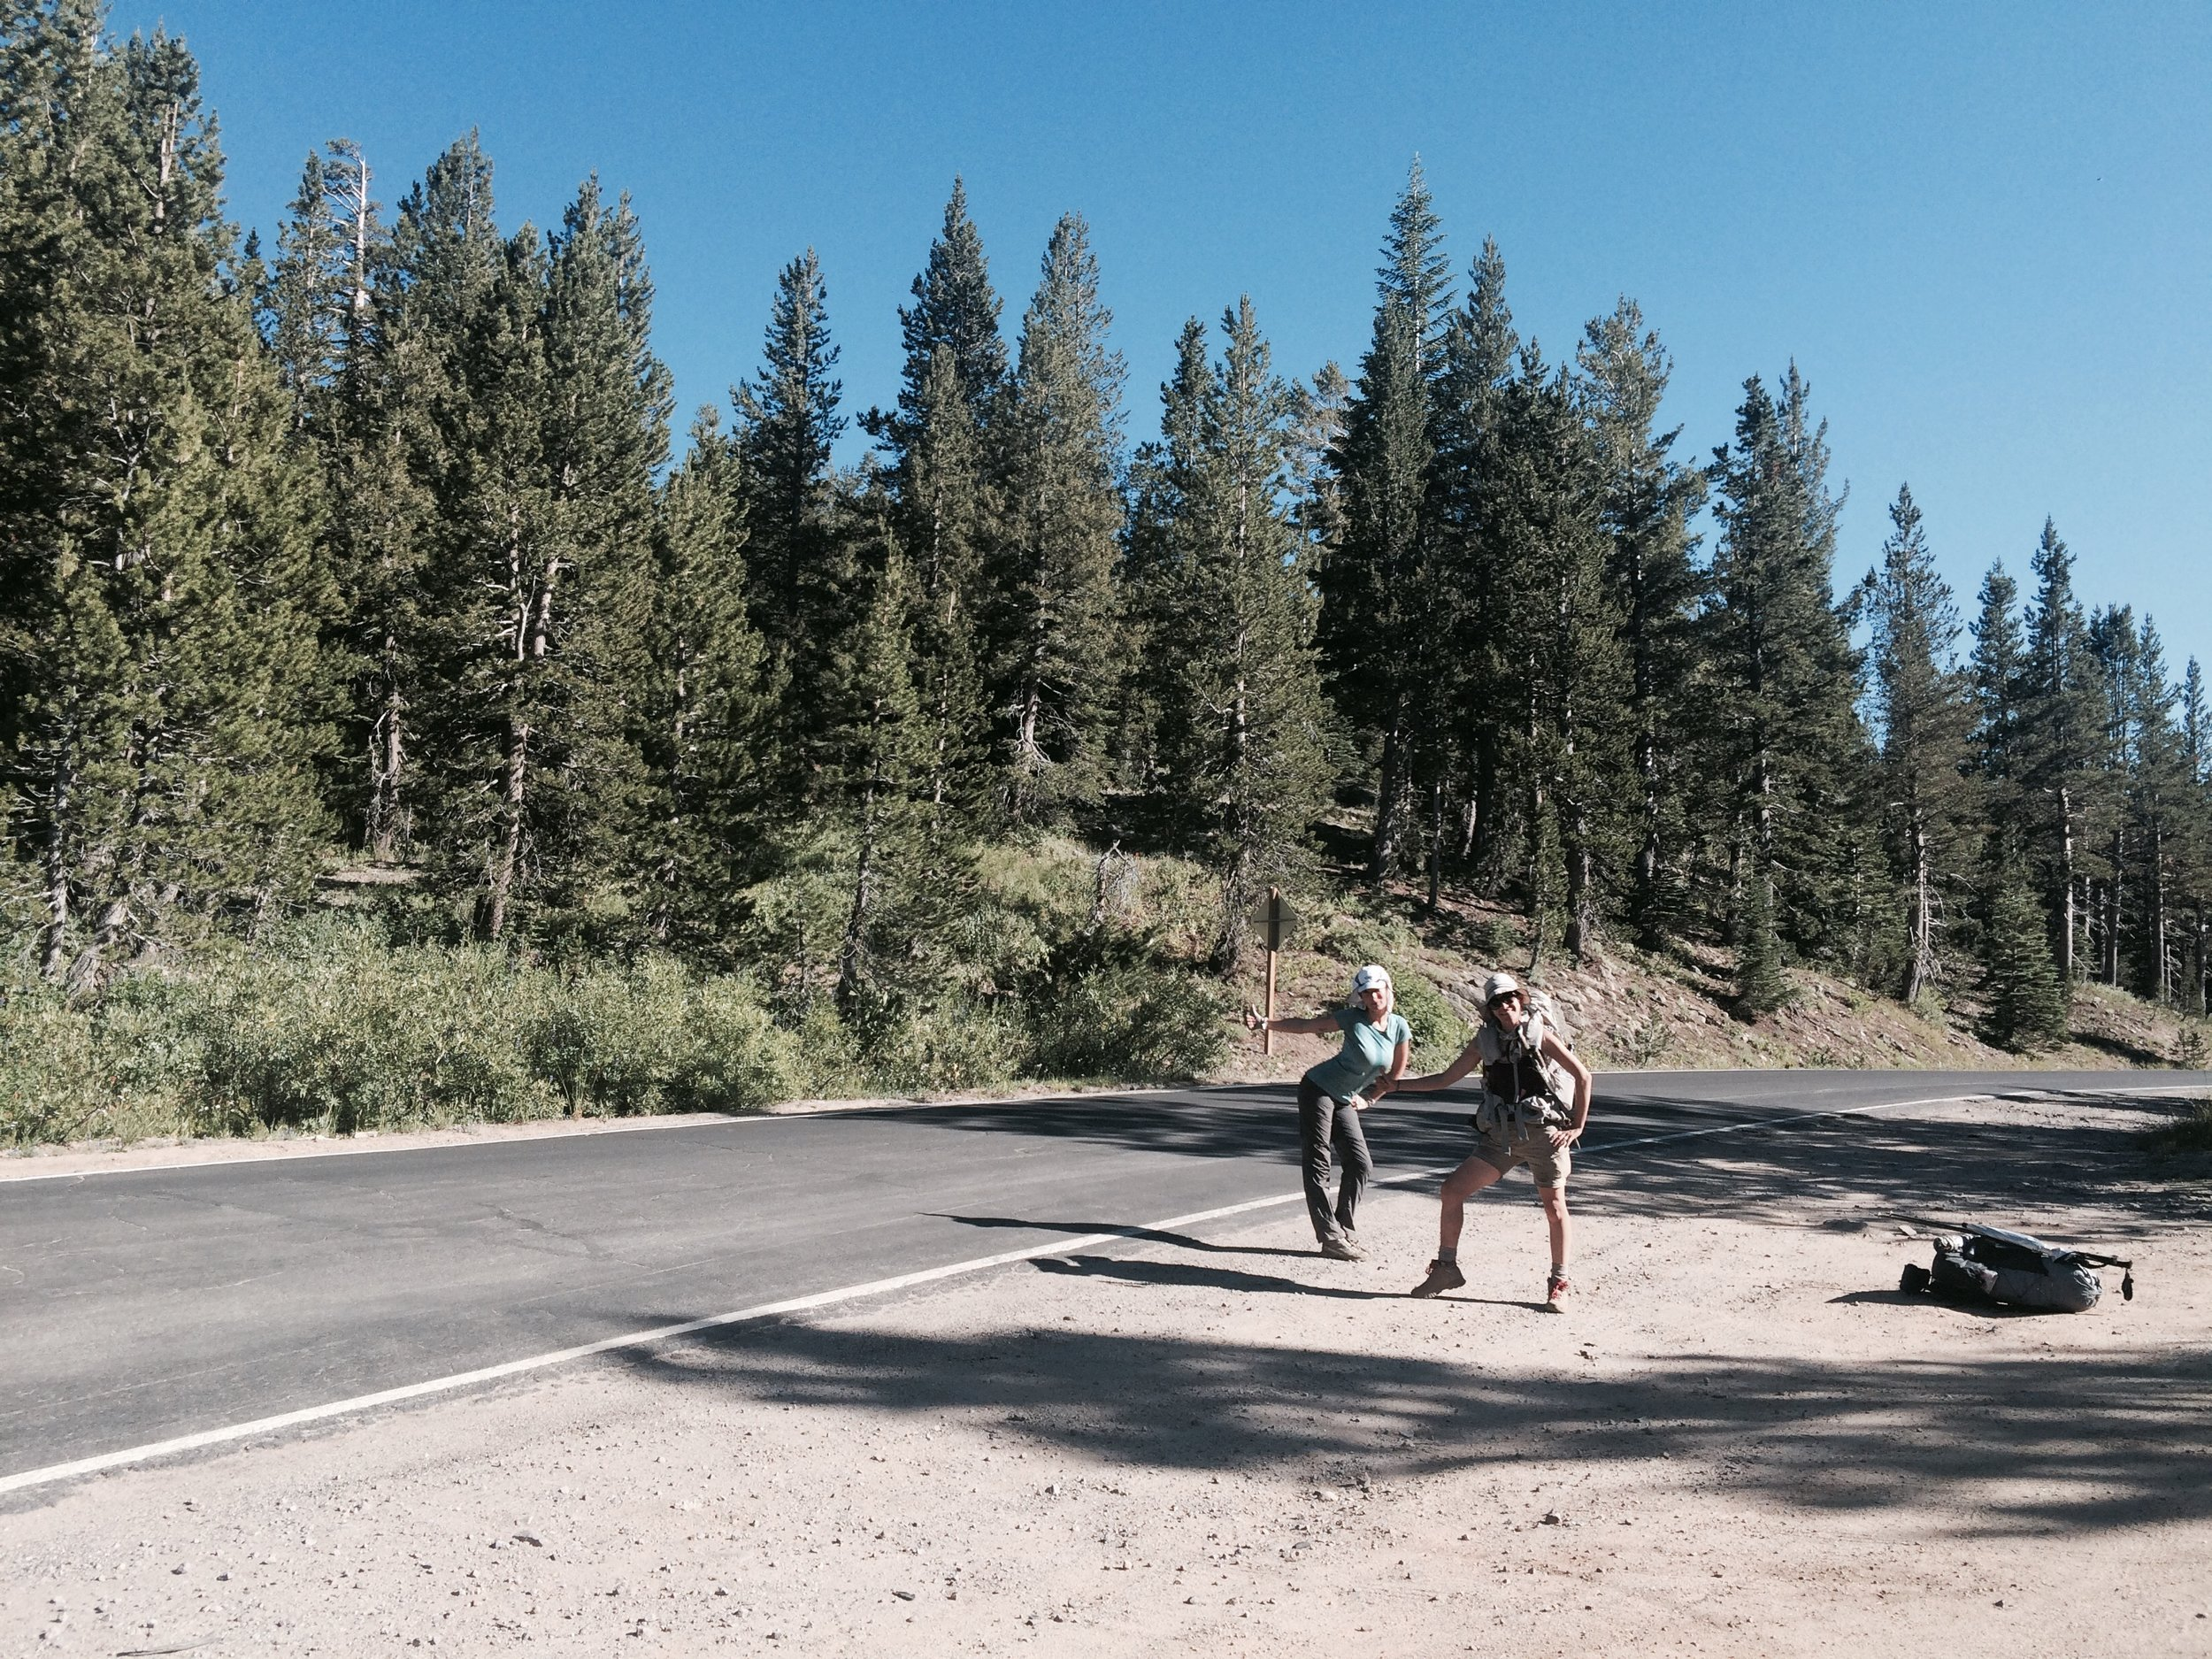 Practicing our hitchhiking skills on Highway 4.